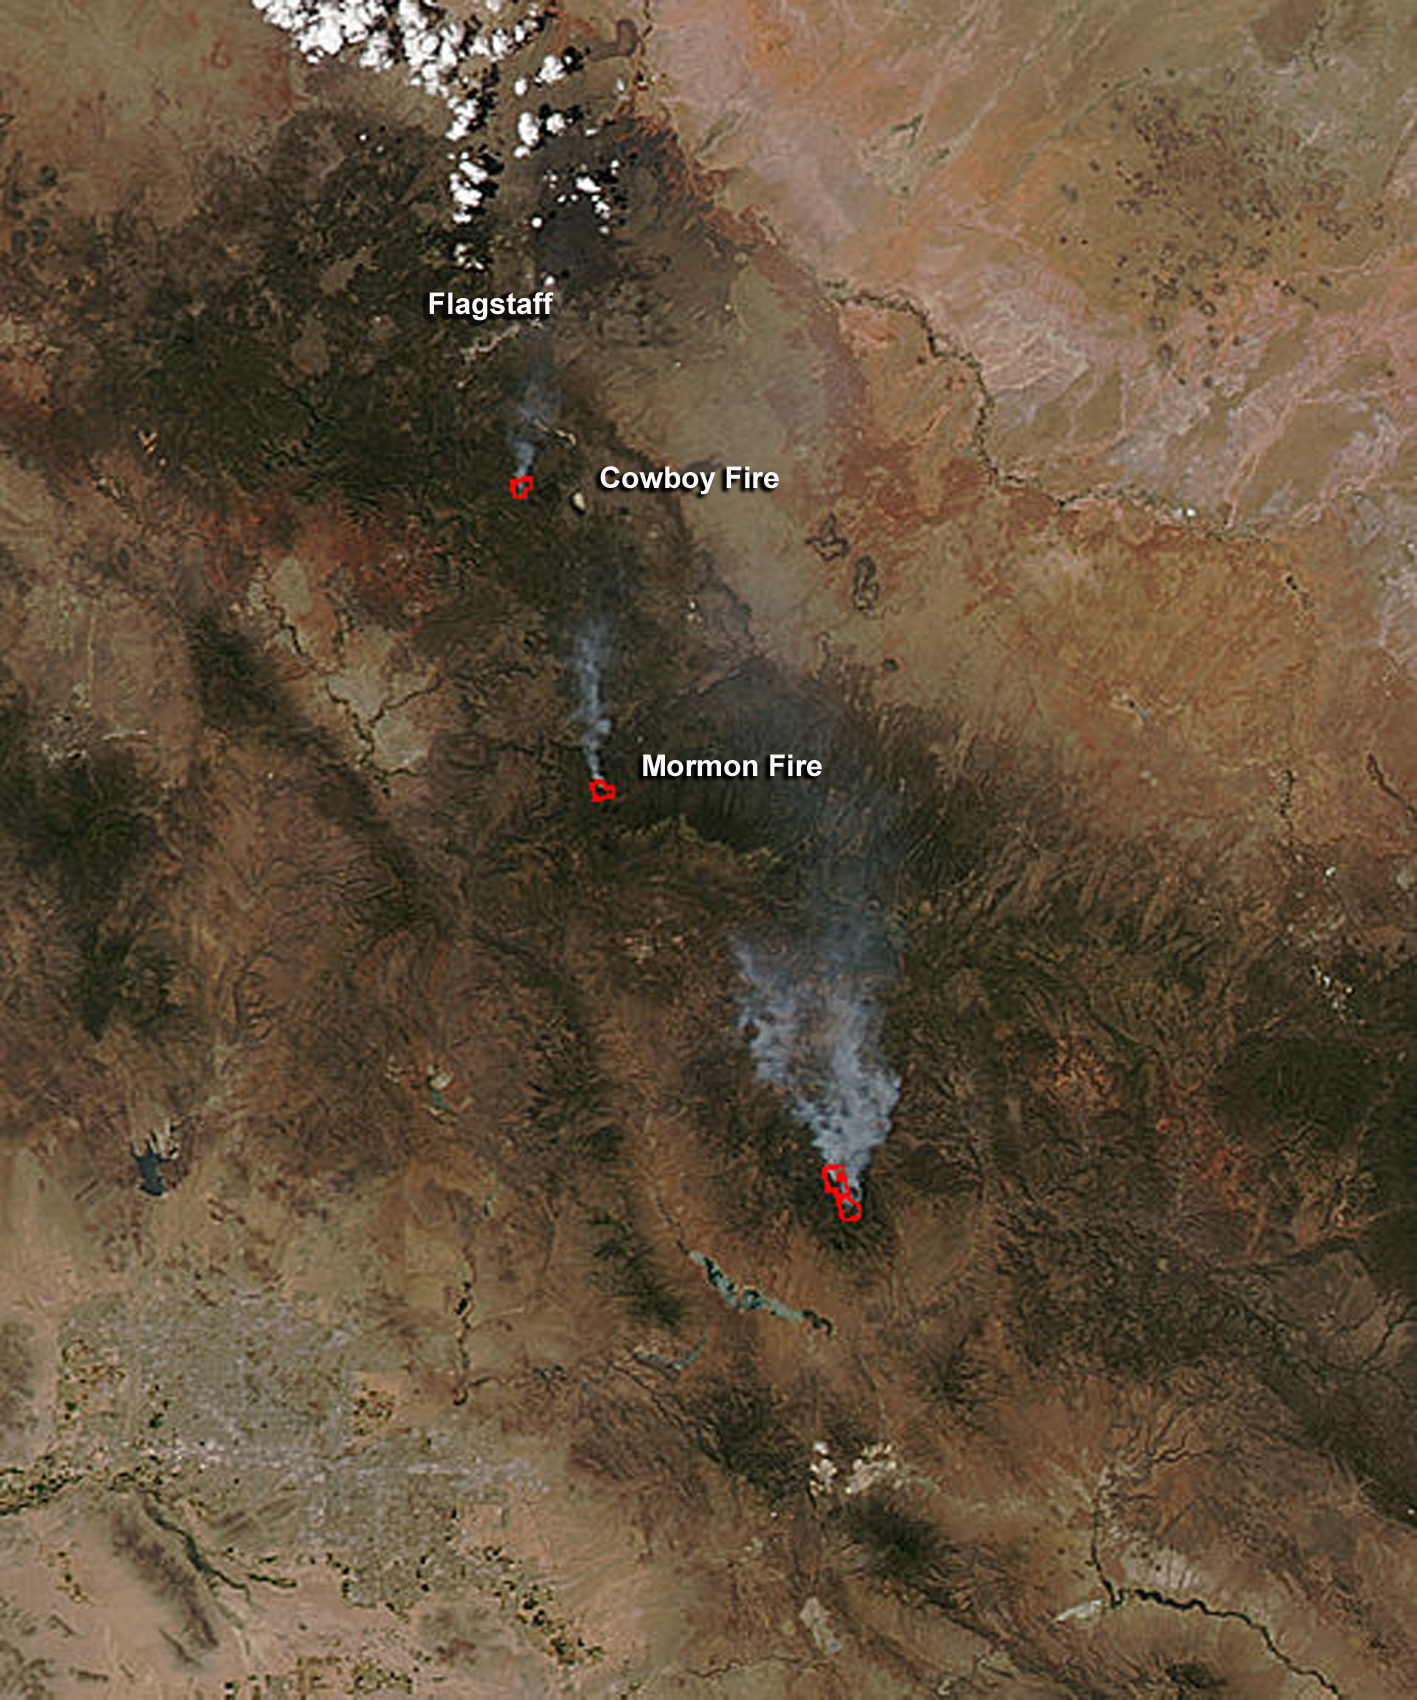 aqua satellite sees cowboy and mormon fires in arizona nasa nasa s aqua satellite sees cowboy and mormon fires in arizona